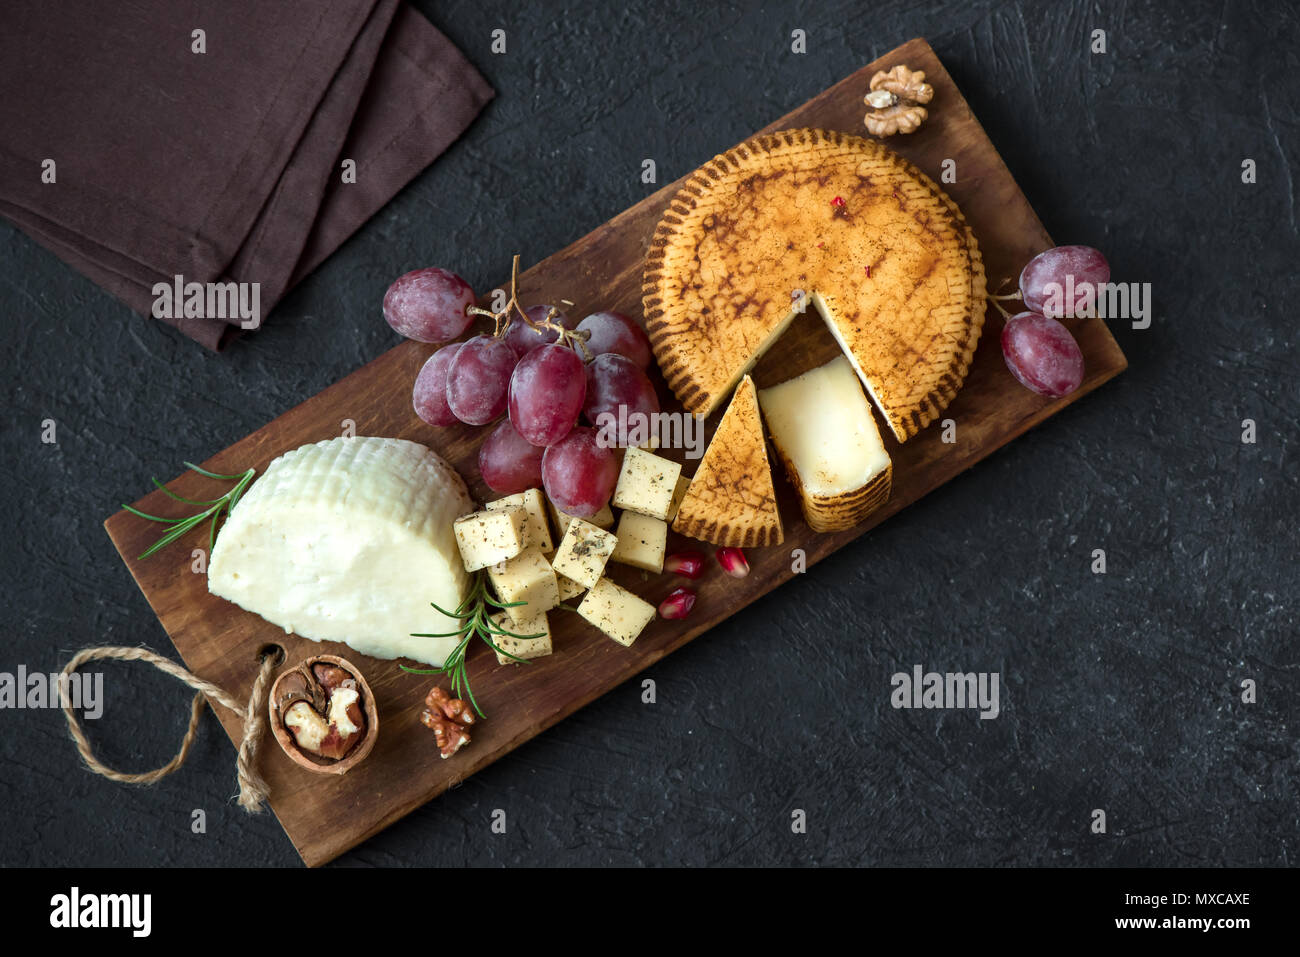 Cheese platter with assorted cheeses, grapes, nuts over black background, copy space. Italian cheese and fruit platter. - Stock Image